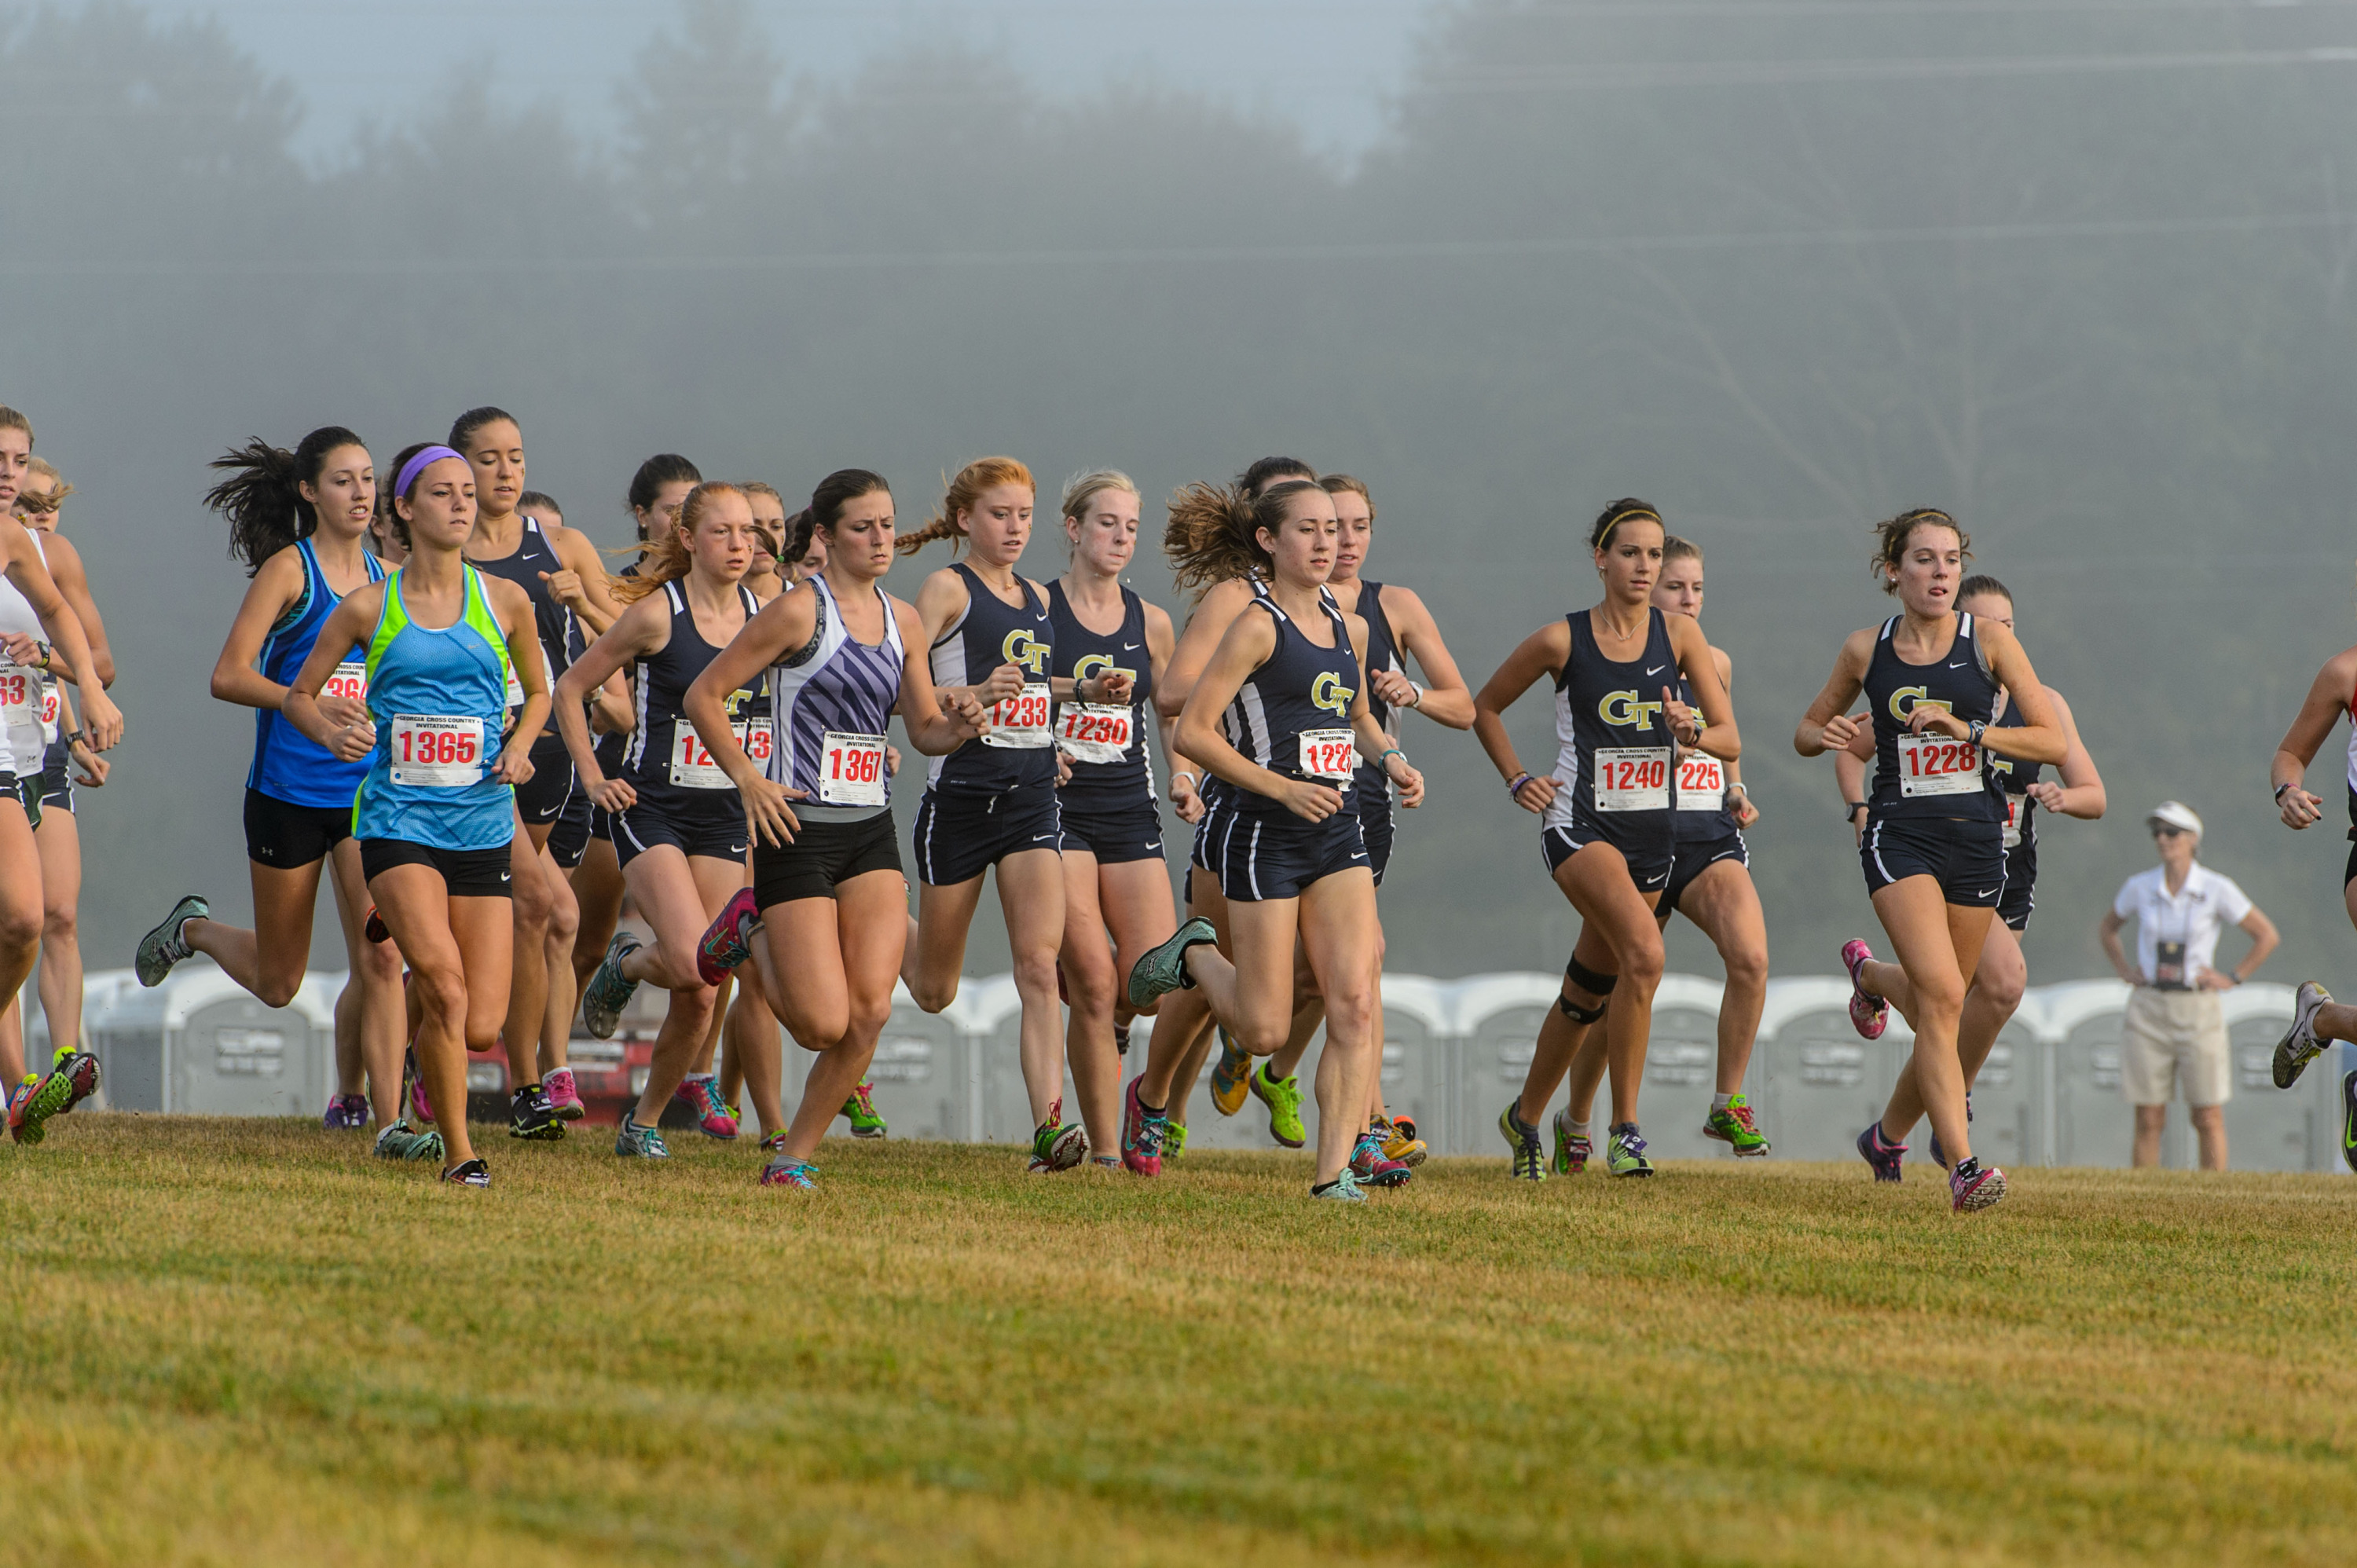 The Women's Cross Country team runs at the UGA Invitational